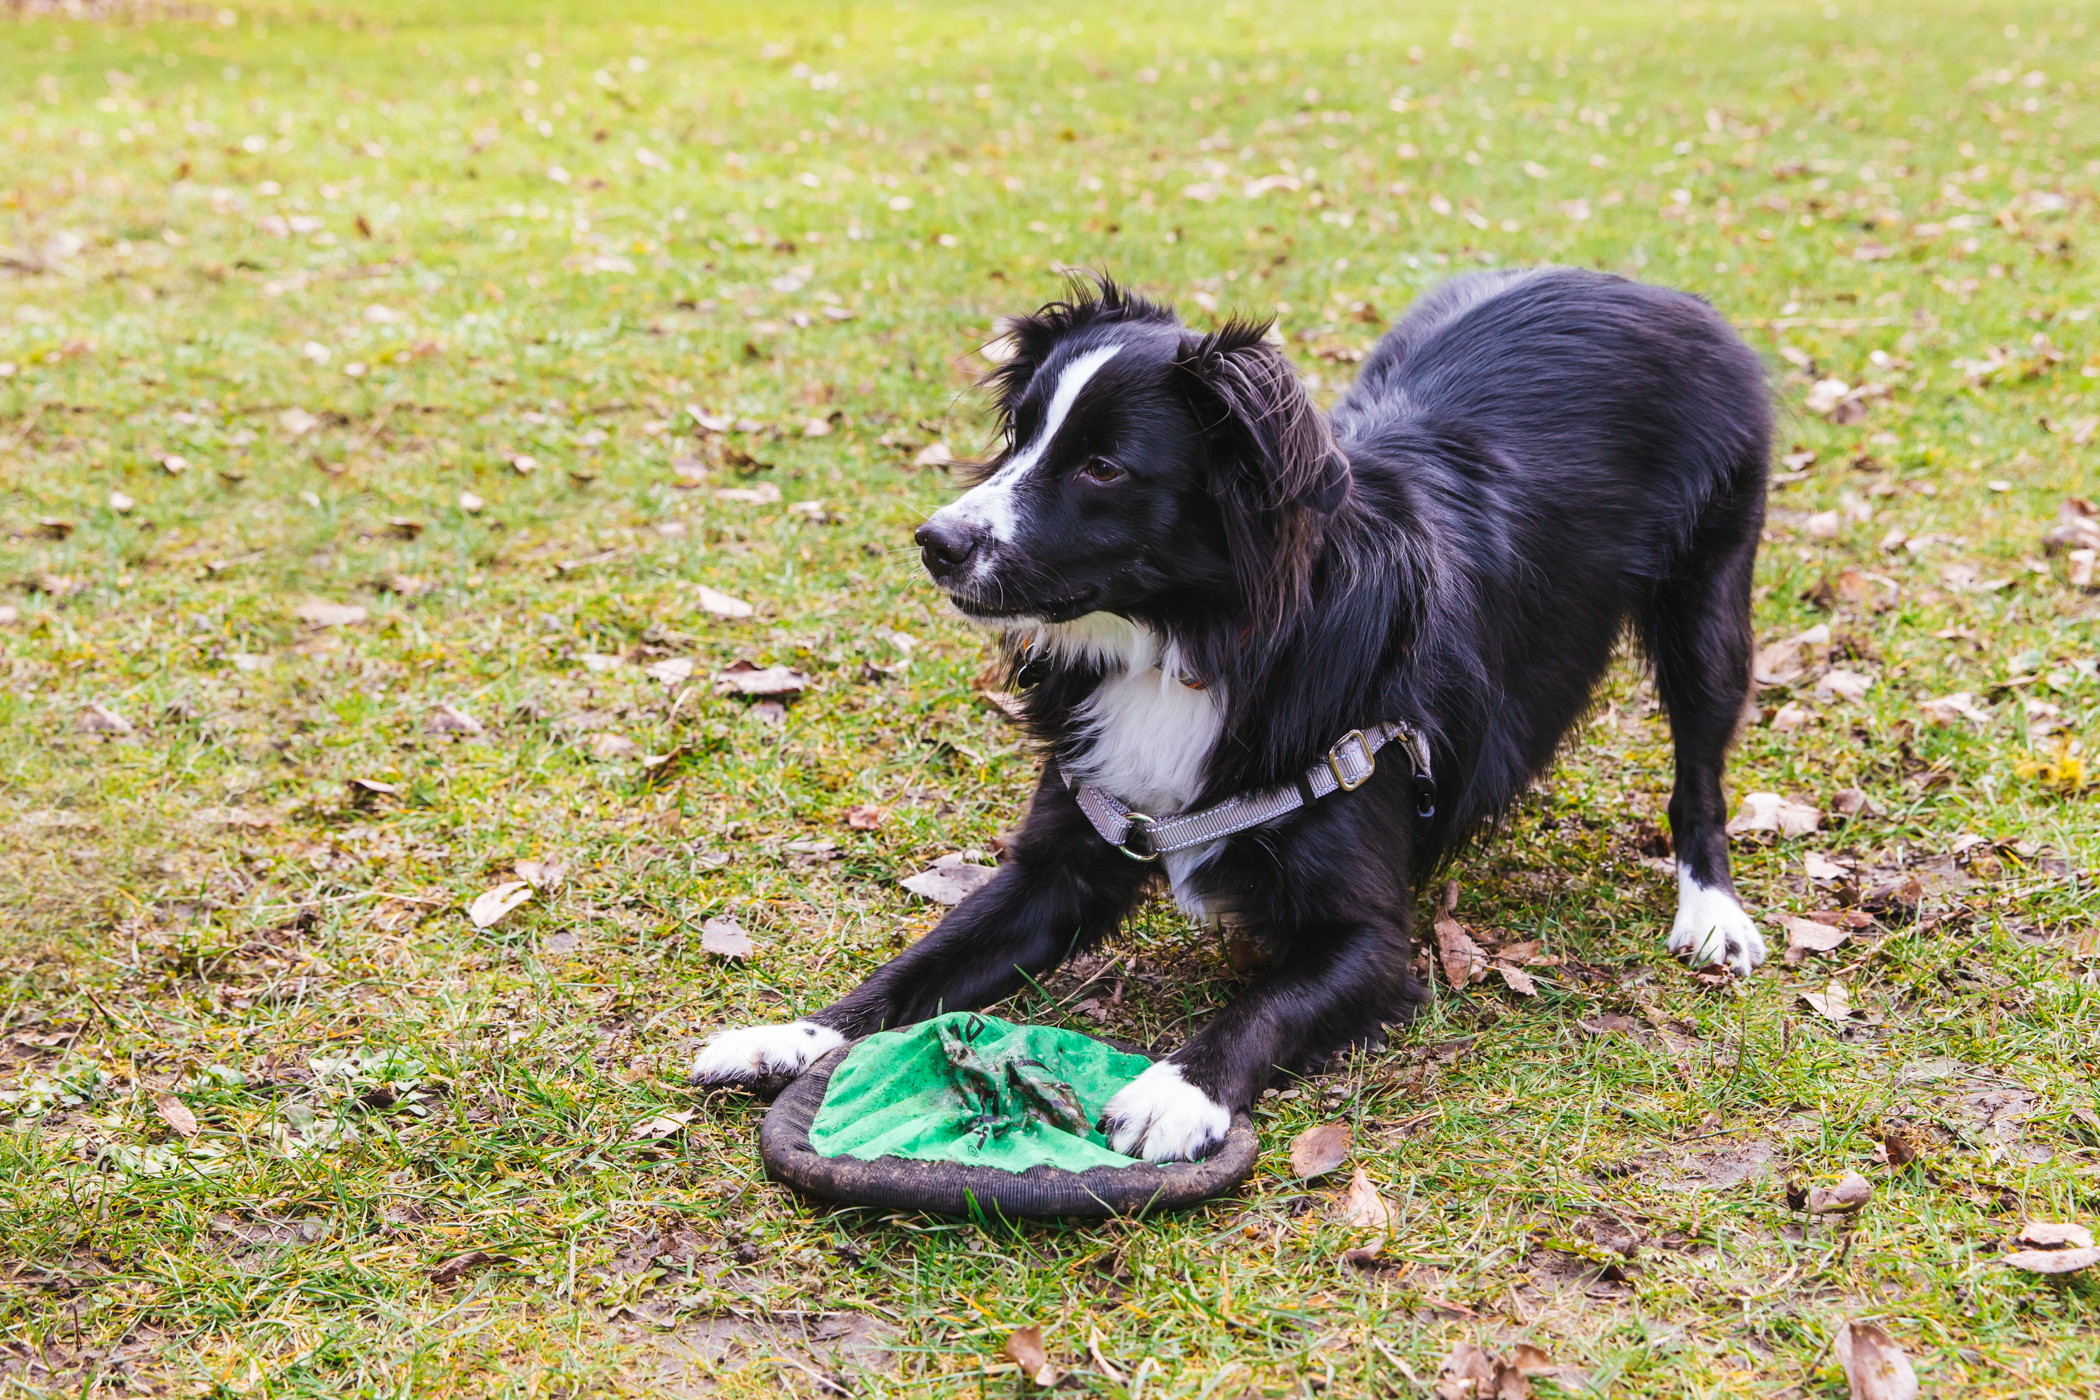 "Koopar is a little bundle of joy, almost two years old and and LOVES playing frisbee and learning new tricks, though he can get a tad frustrated when he can't get it right. He's also a big fan of{&nbsp;} swimming and hide a seek, but not so hot on loud noises. You can follow Koopar on Instagram at @<a  href=""https://www.instagram.com/miniaussiekoopar/"" target=""_blank"" title=""https://www.instagram.com/miniaussiekoopar/"">miniaussiekoopar</a>.{&nbsp;}<a  href=""http://seattlerefined.com/ruffined"" target=""_blank"" title=""http://seattlerefined.com/ruffined"">The RUFFined Spotlight{&nbsp;}</a>is a weekly profile of local pets living and loving life in the PNW. If you or someone you know has a pet you'd like featured, email us at{&nbsp;}<a  href=""mailto:hello@seattlerefined.com"" target=""_blank"" title=""mailto:hello@seattlerefined.com"">hello@seattlerefined.com</a>, and your furbaby could be the next spotlighted! (Image: Sunita Martini / Seattle Refined)"